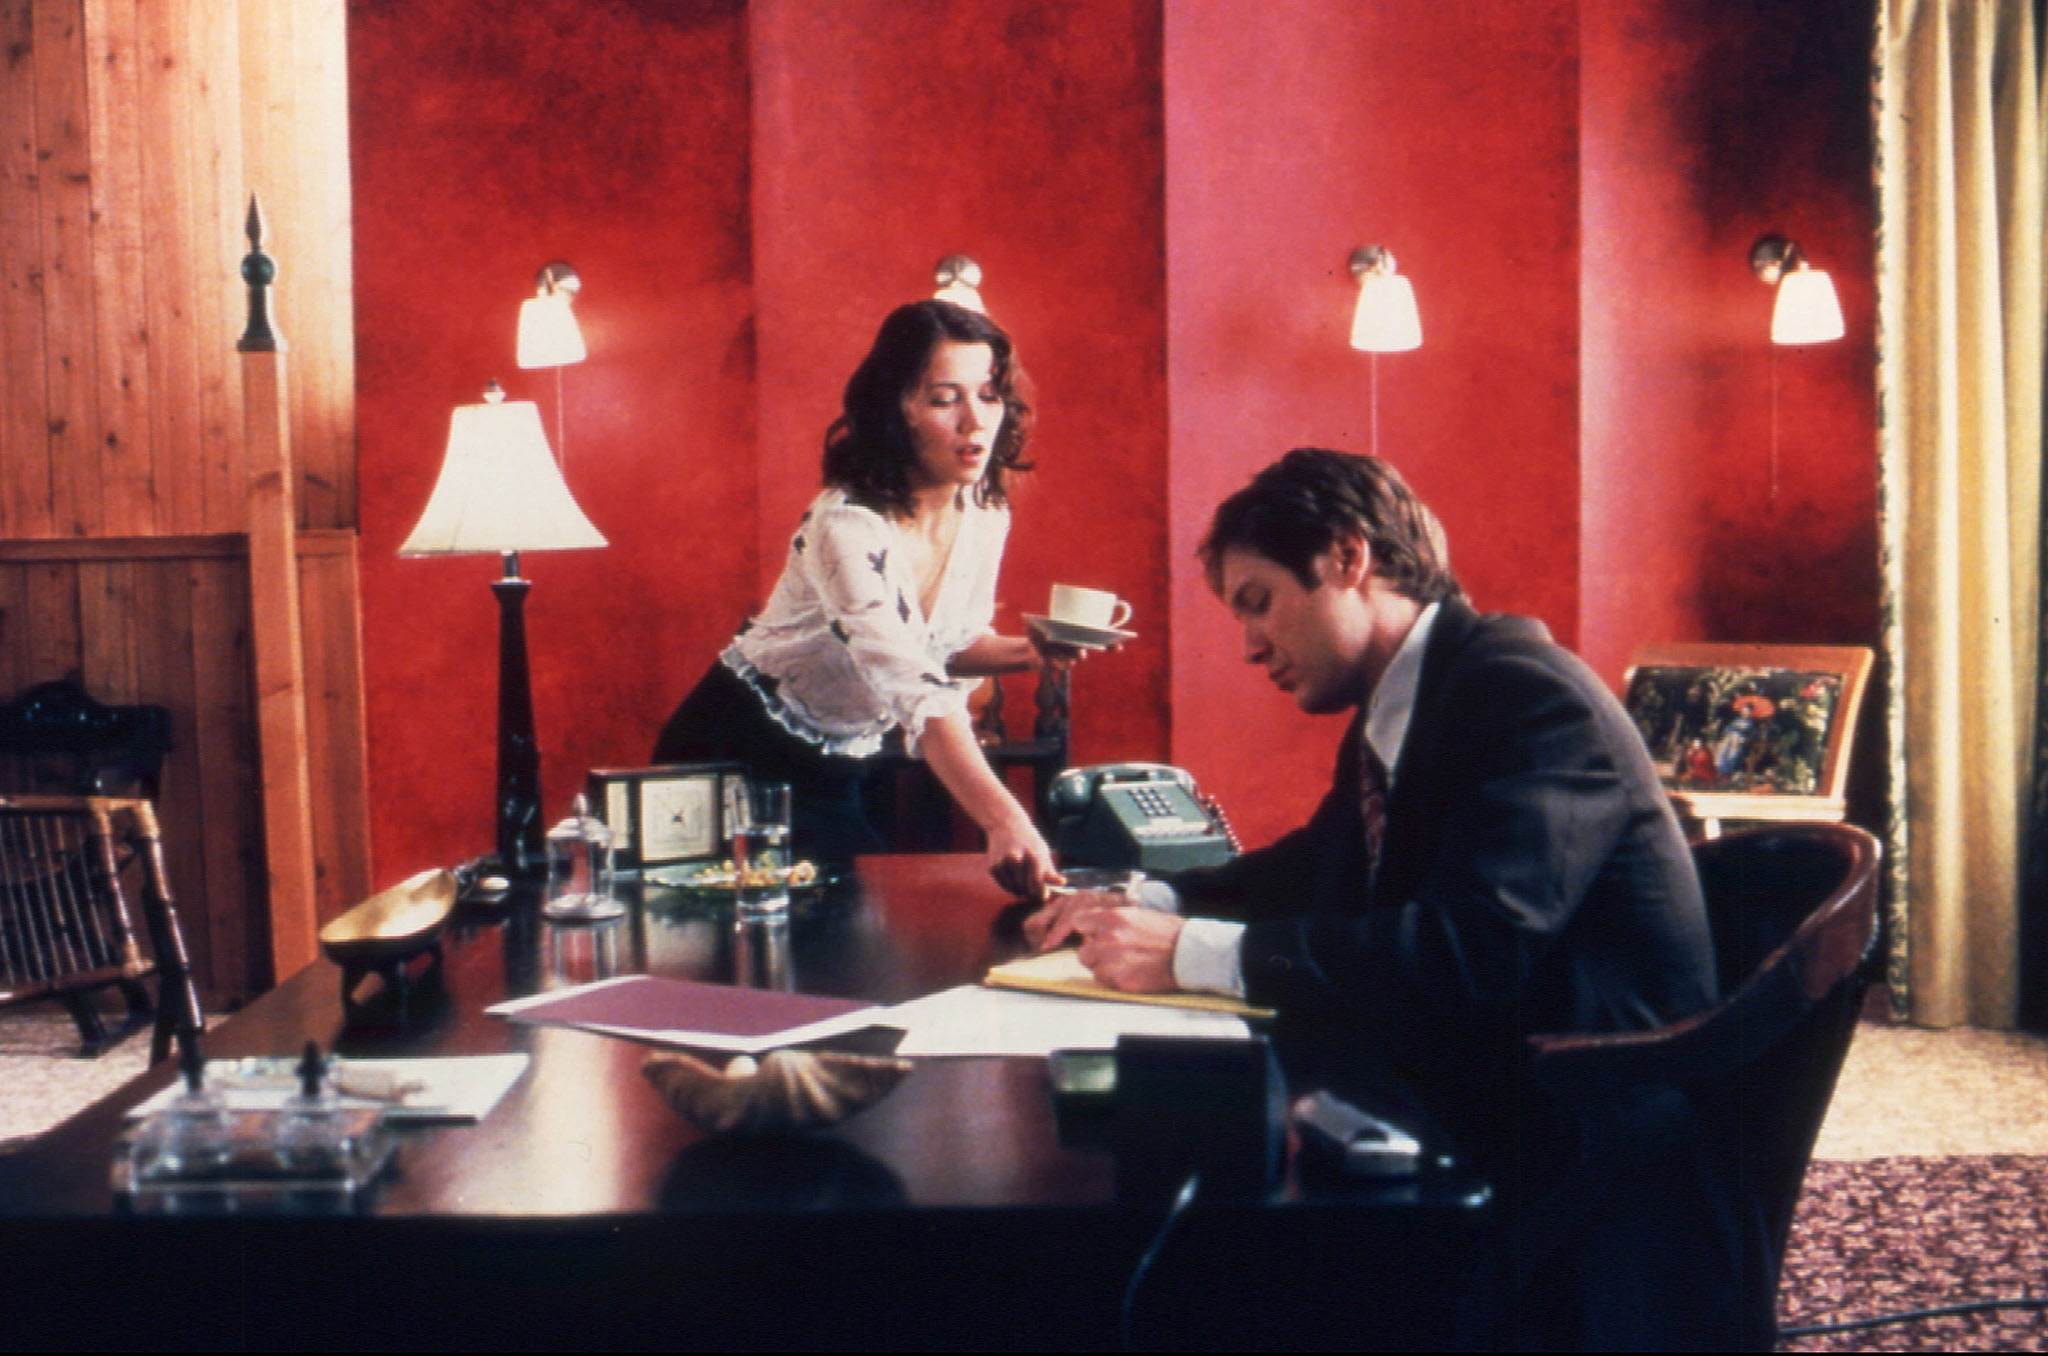 The secretary maggie gyllenhaal desk scene girls